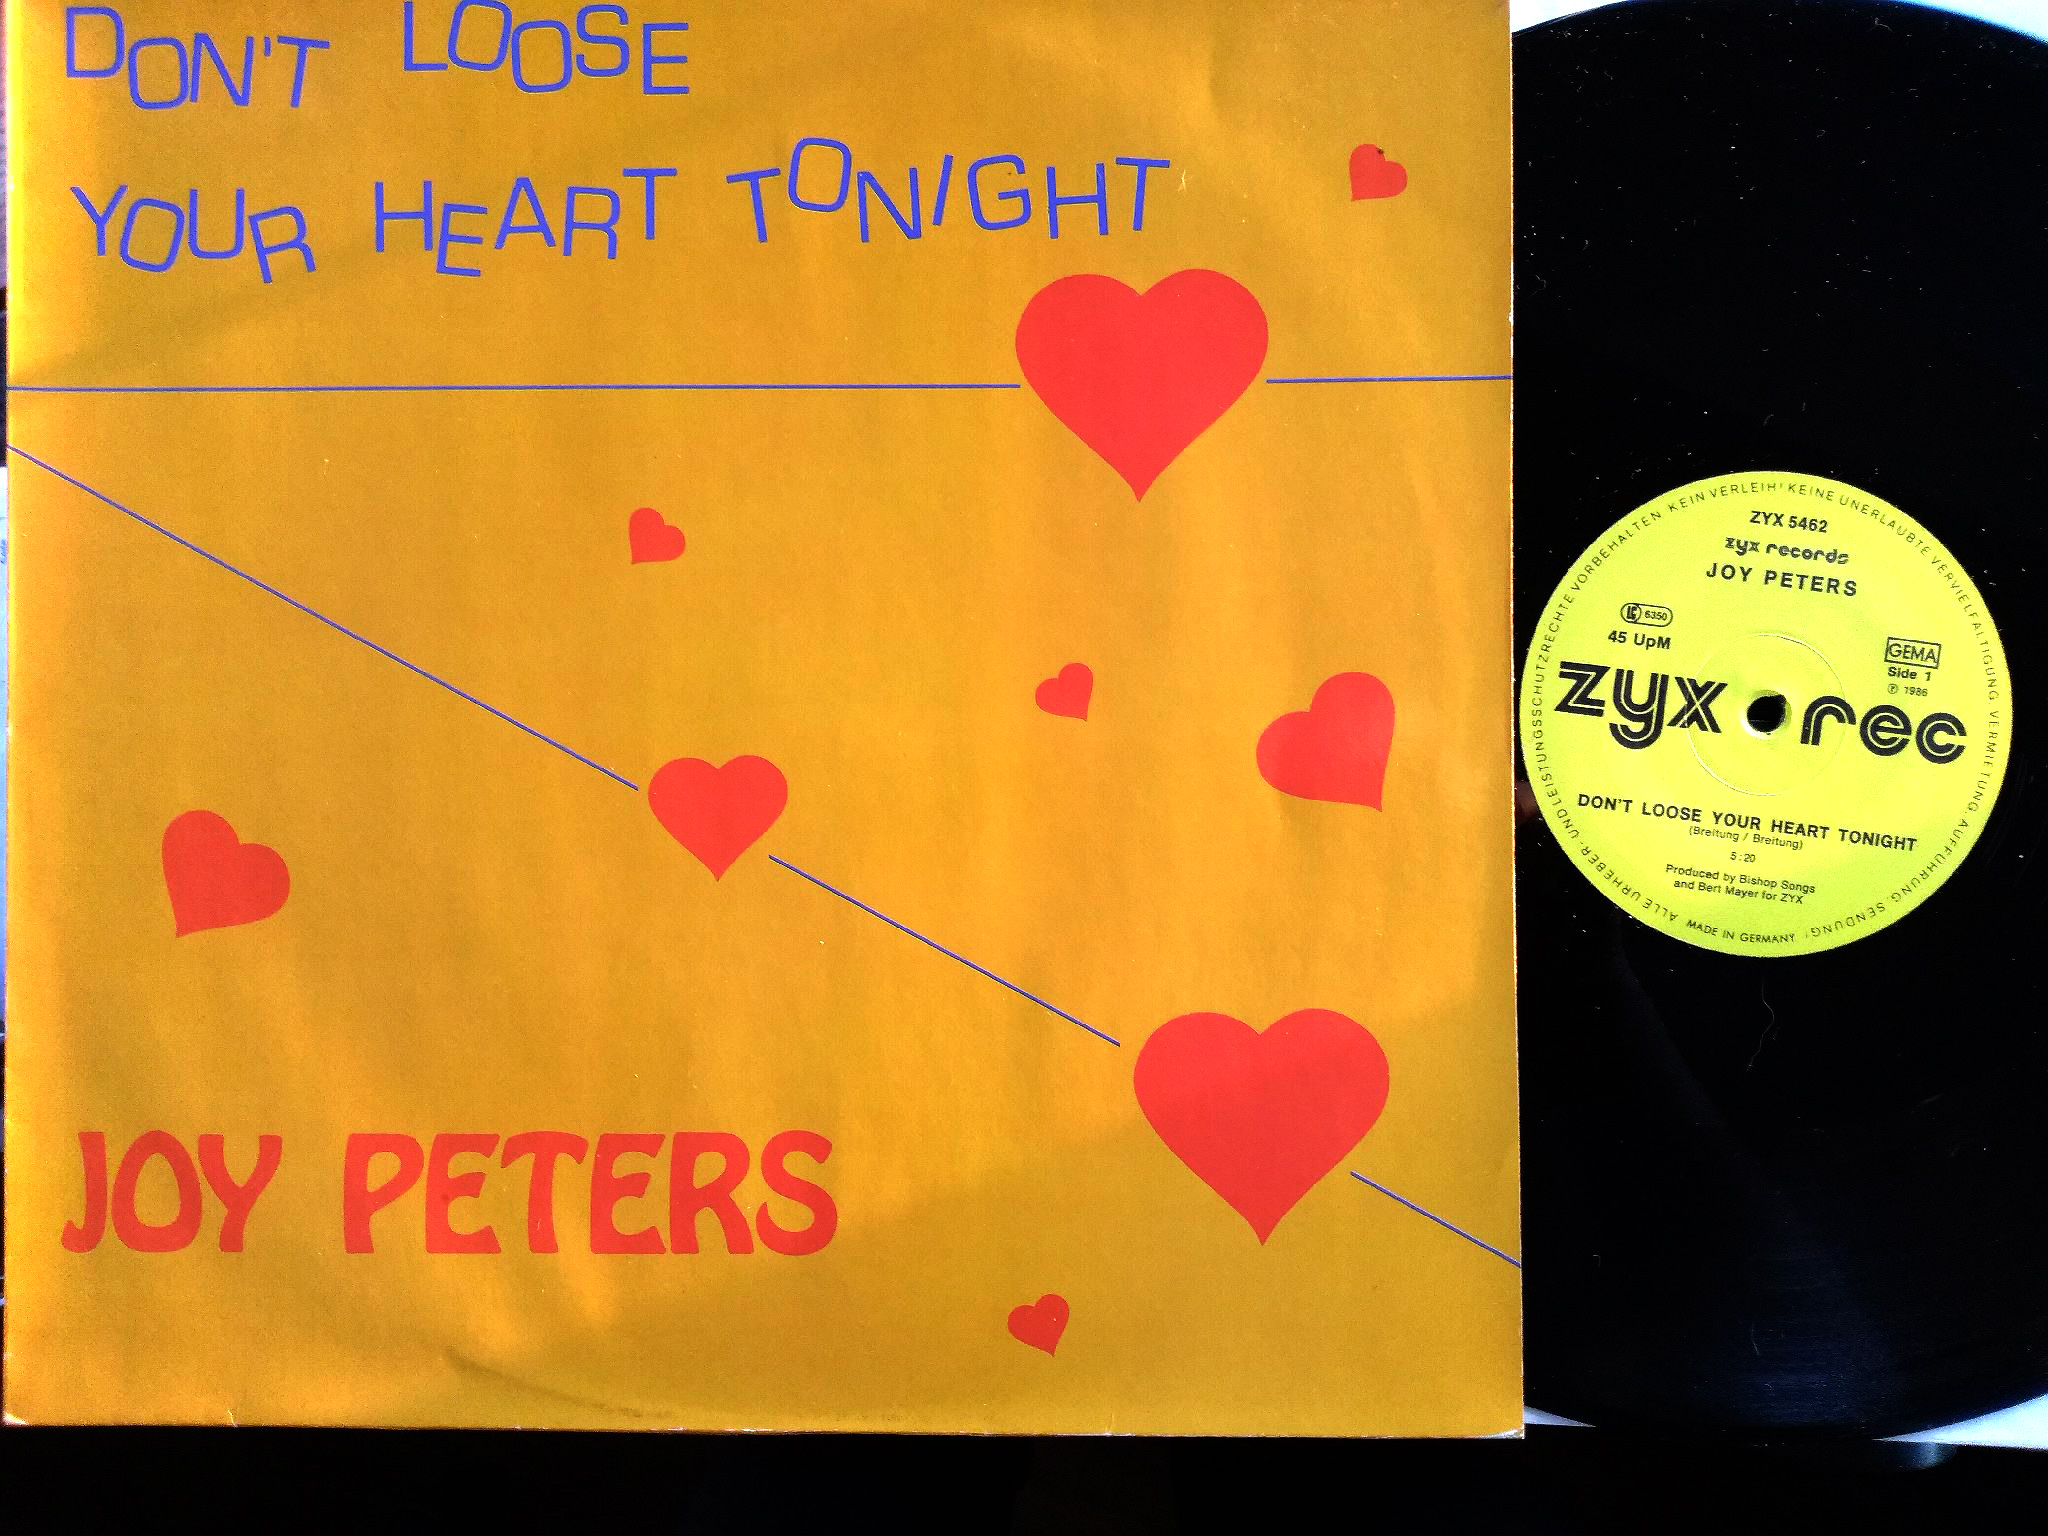 Joy Peters - Don't Loose Your Heart Tonight